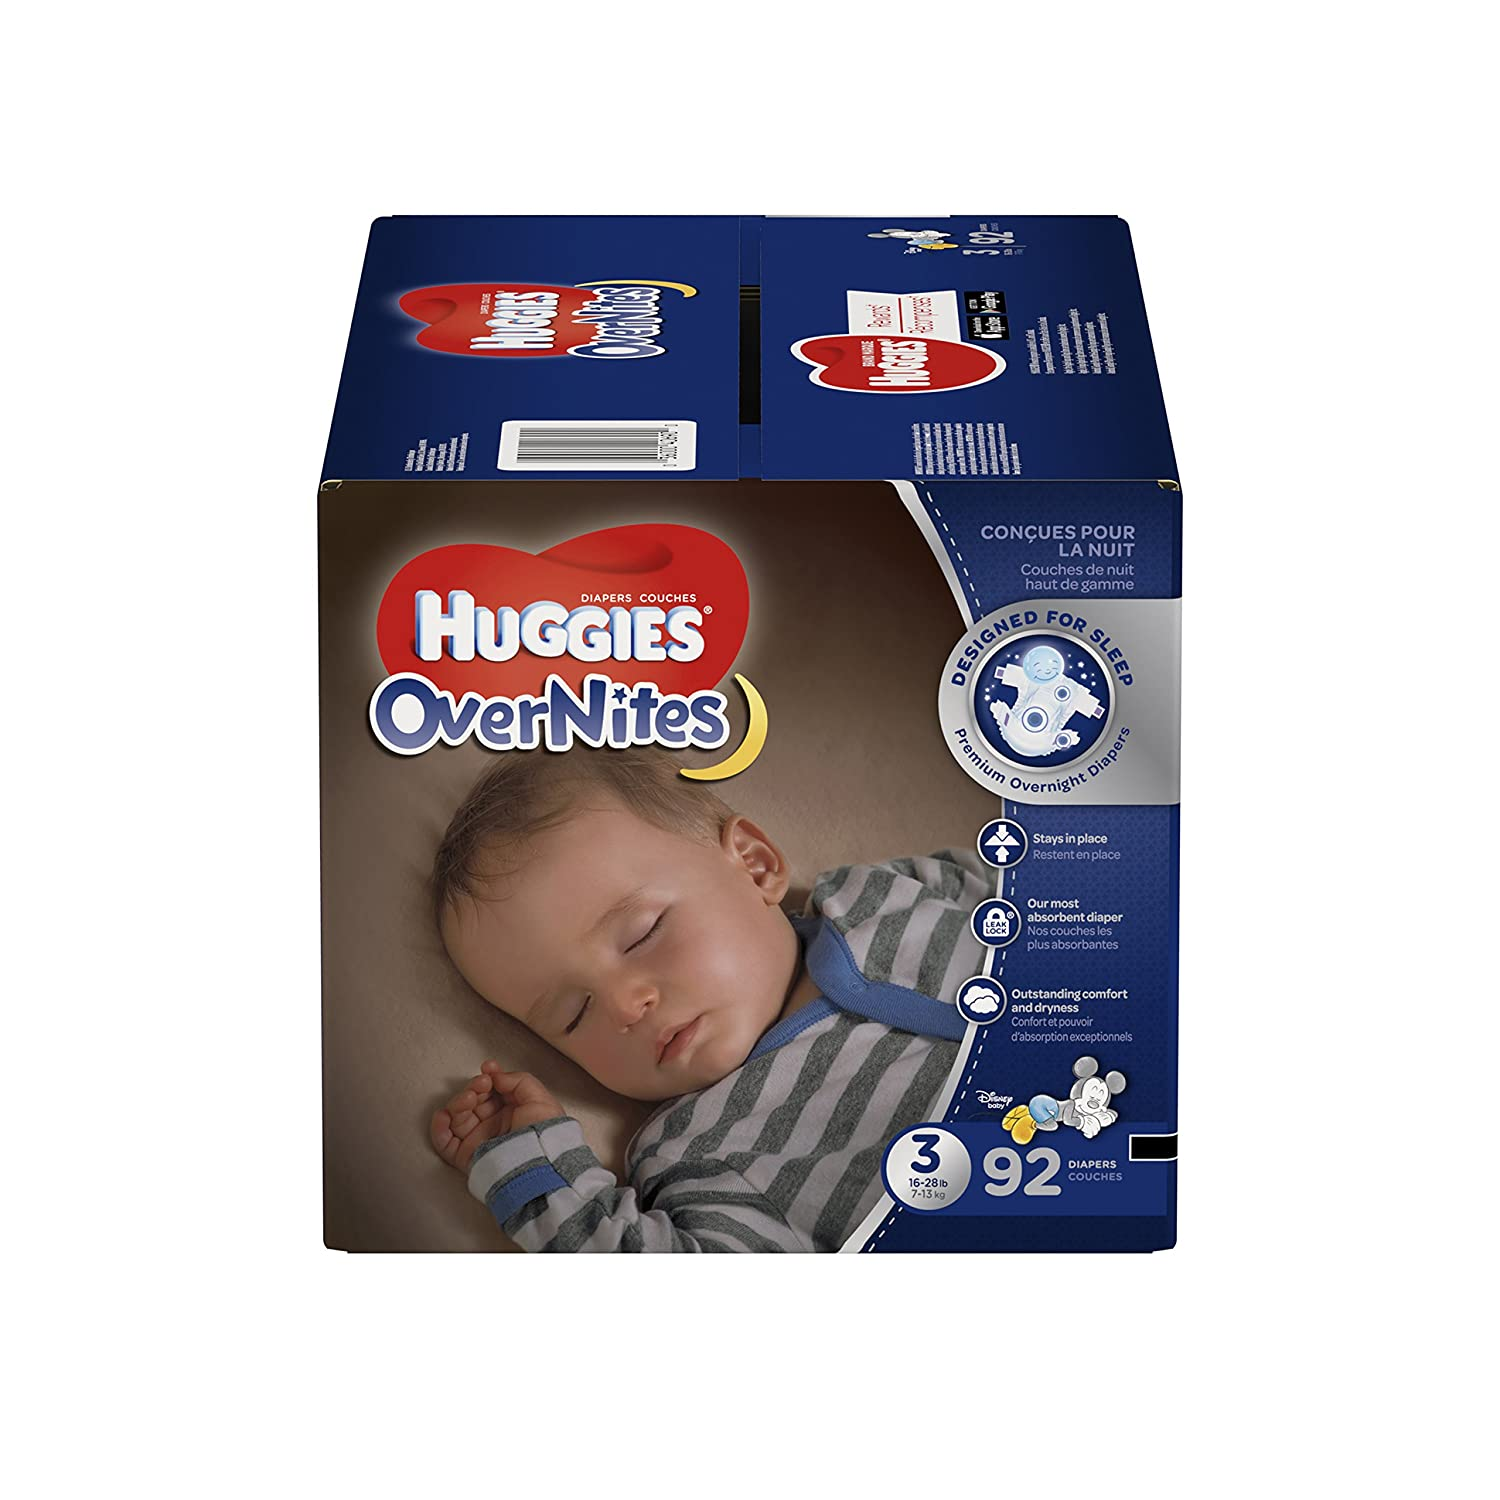 HUGGIES OverNites Diapers, Size 5, 66 ct., GIGA JR PACK Overnight Diapers (Packaging May Vary) 10036000406952